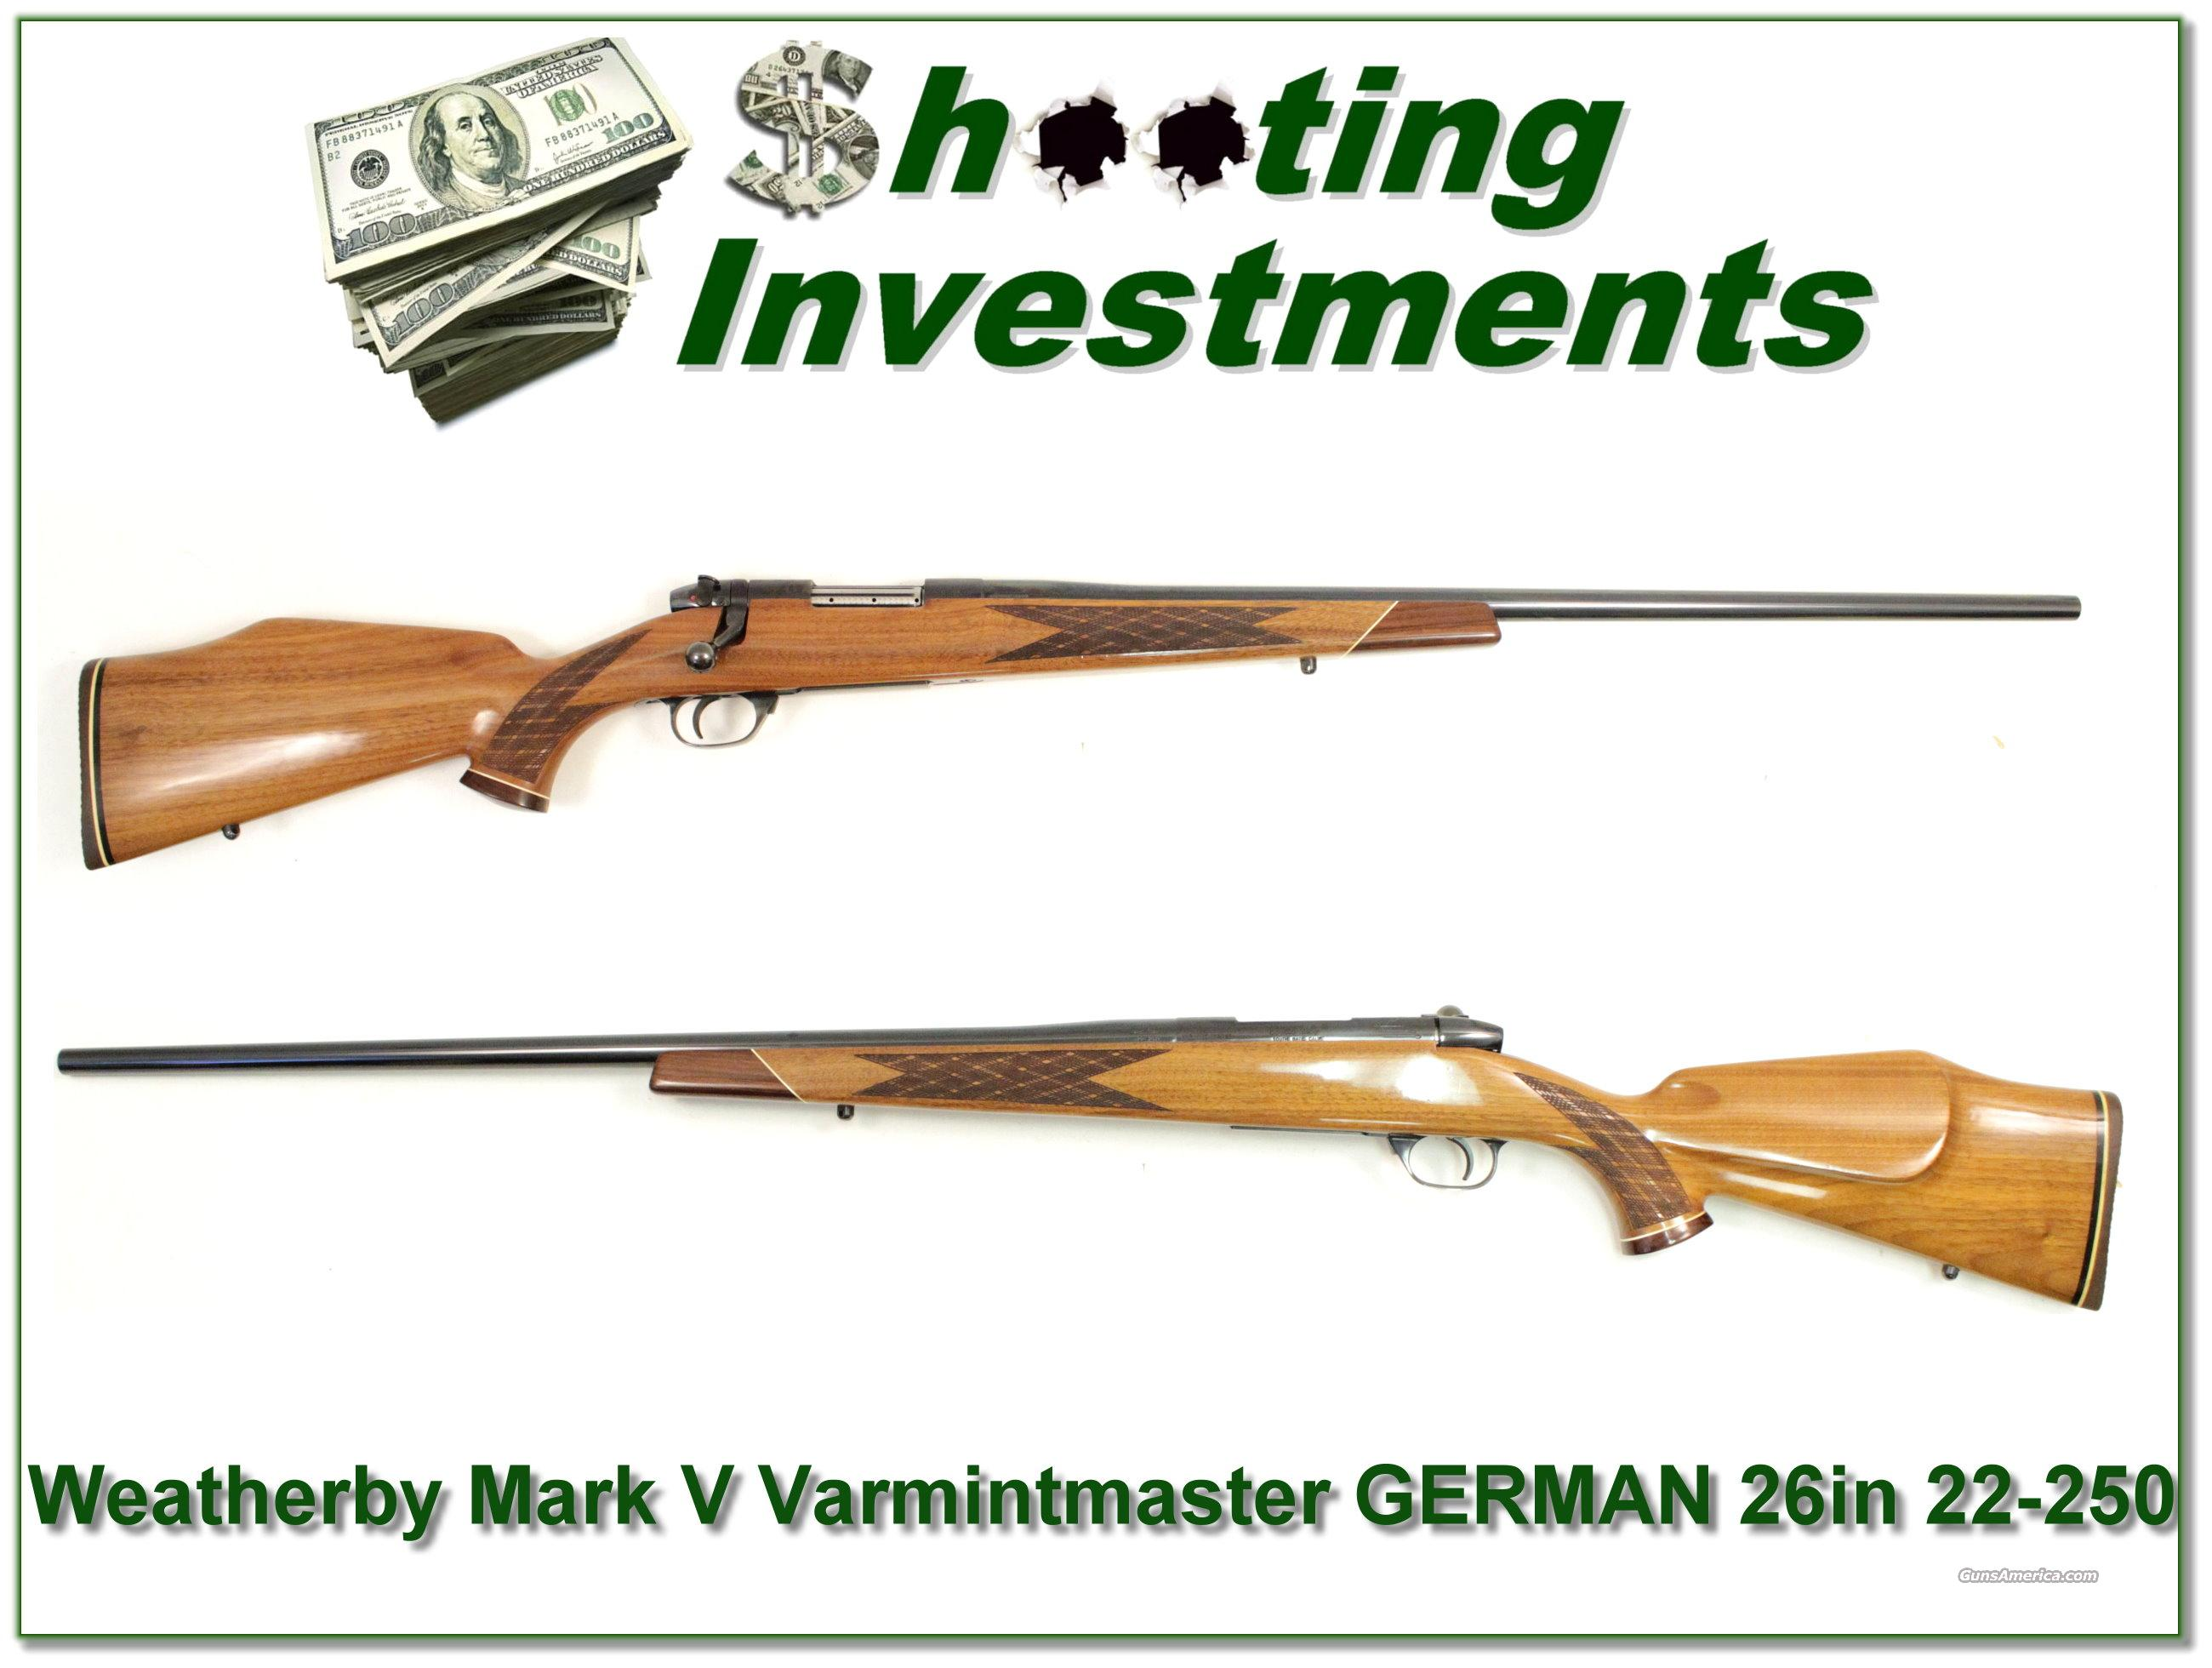 Weatherby Mark V Varmintmaster First Year German 26in!  Guns > Rifles > Weatherby Rifles > Sporting